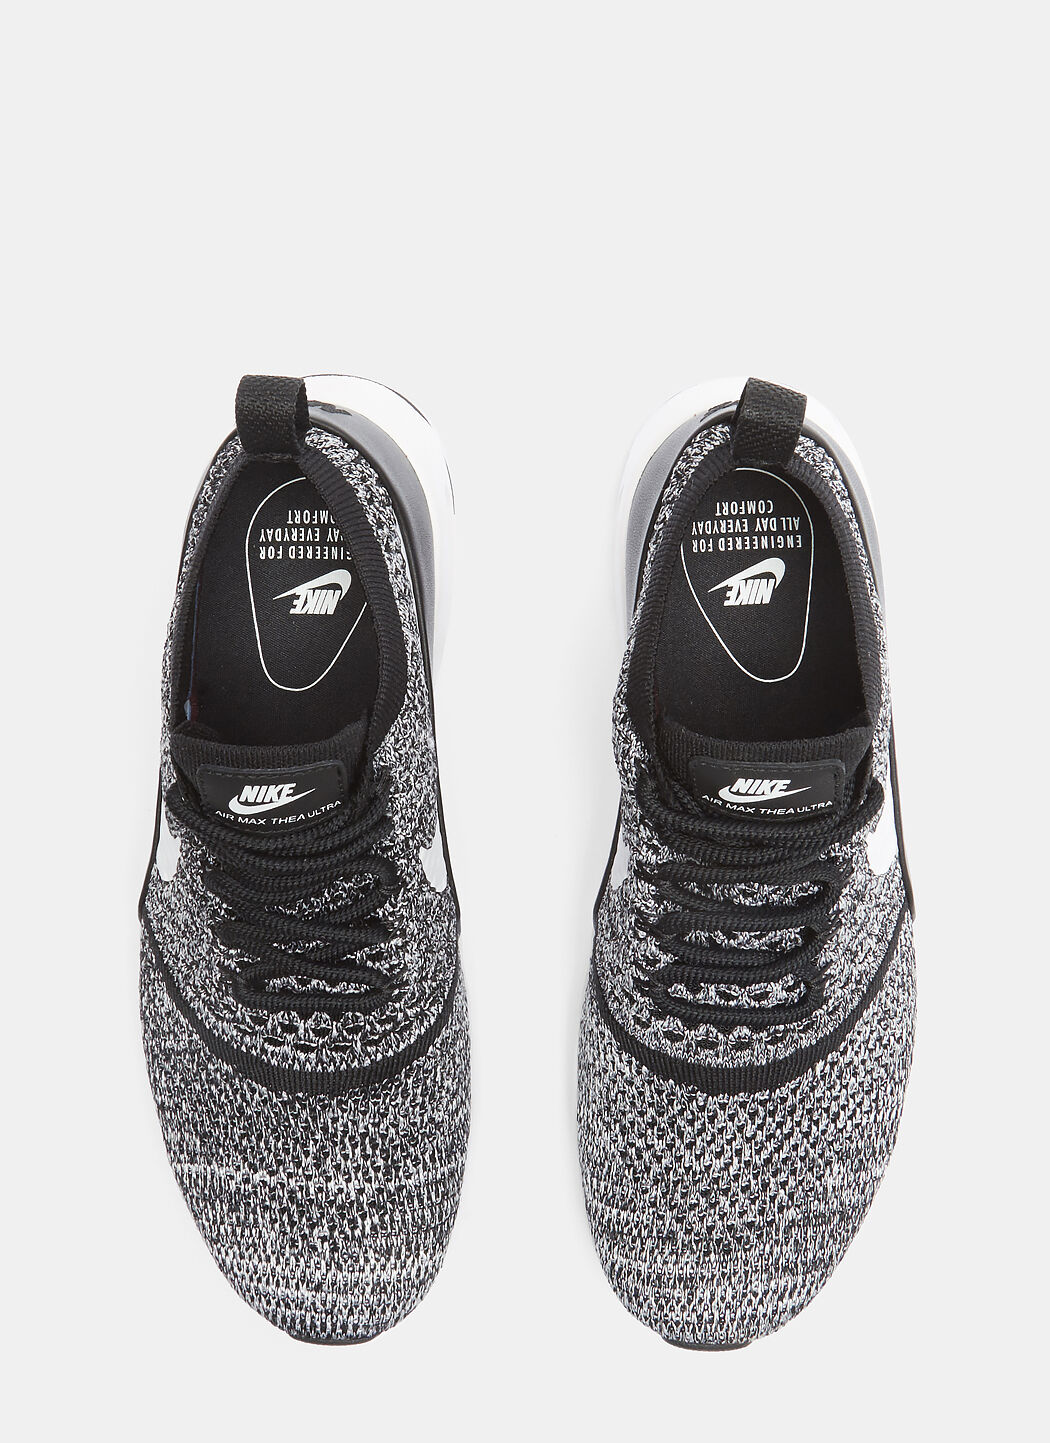 Product of the week: Nike Air Max Thea Ultra Flyknit